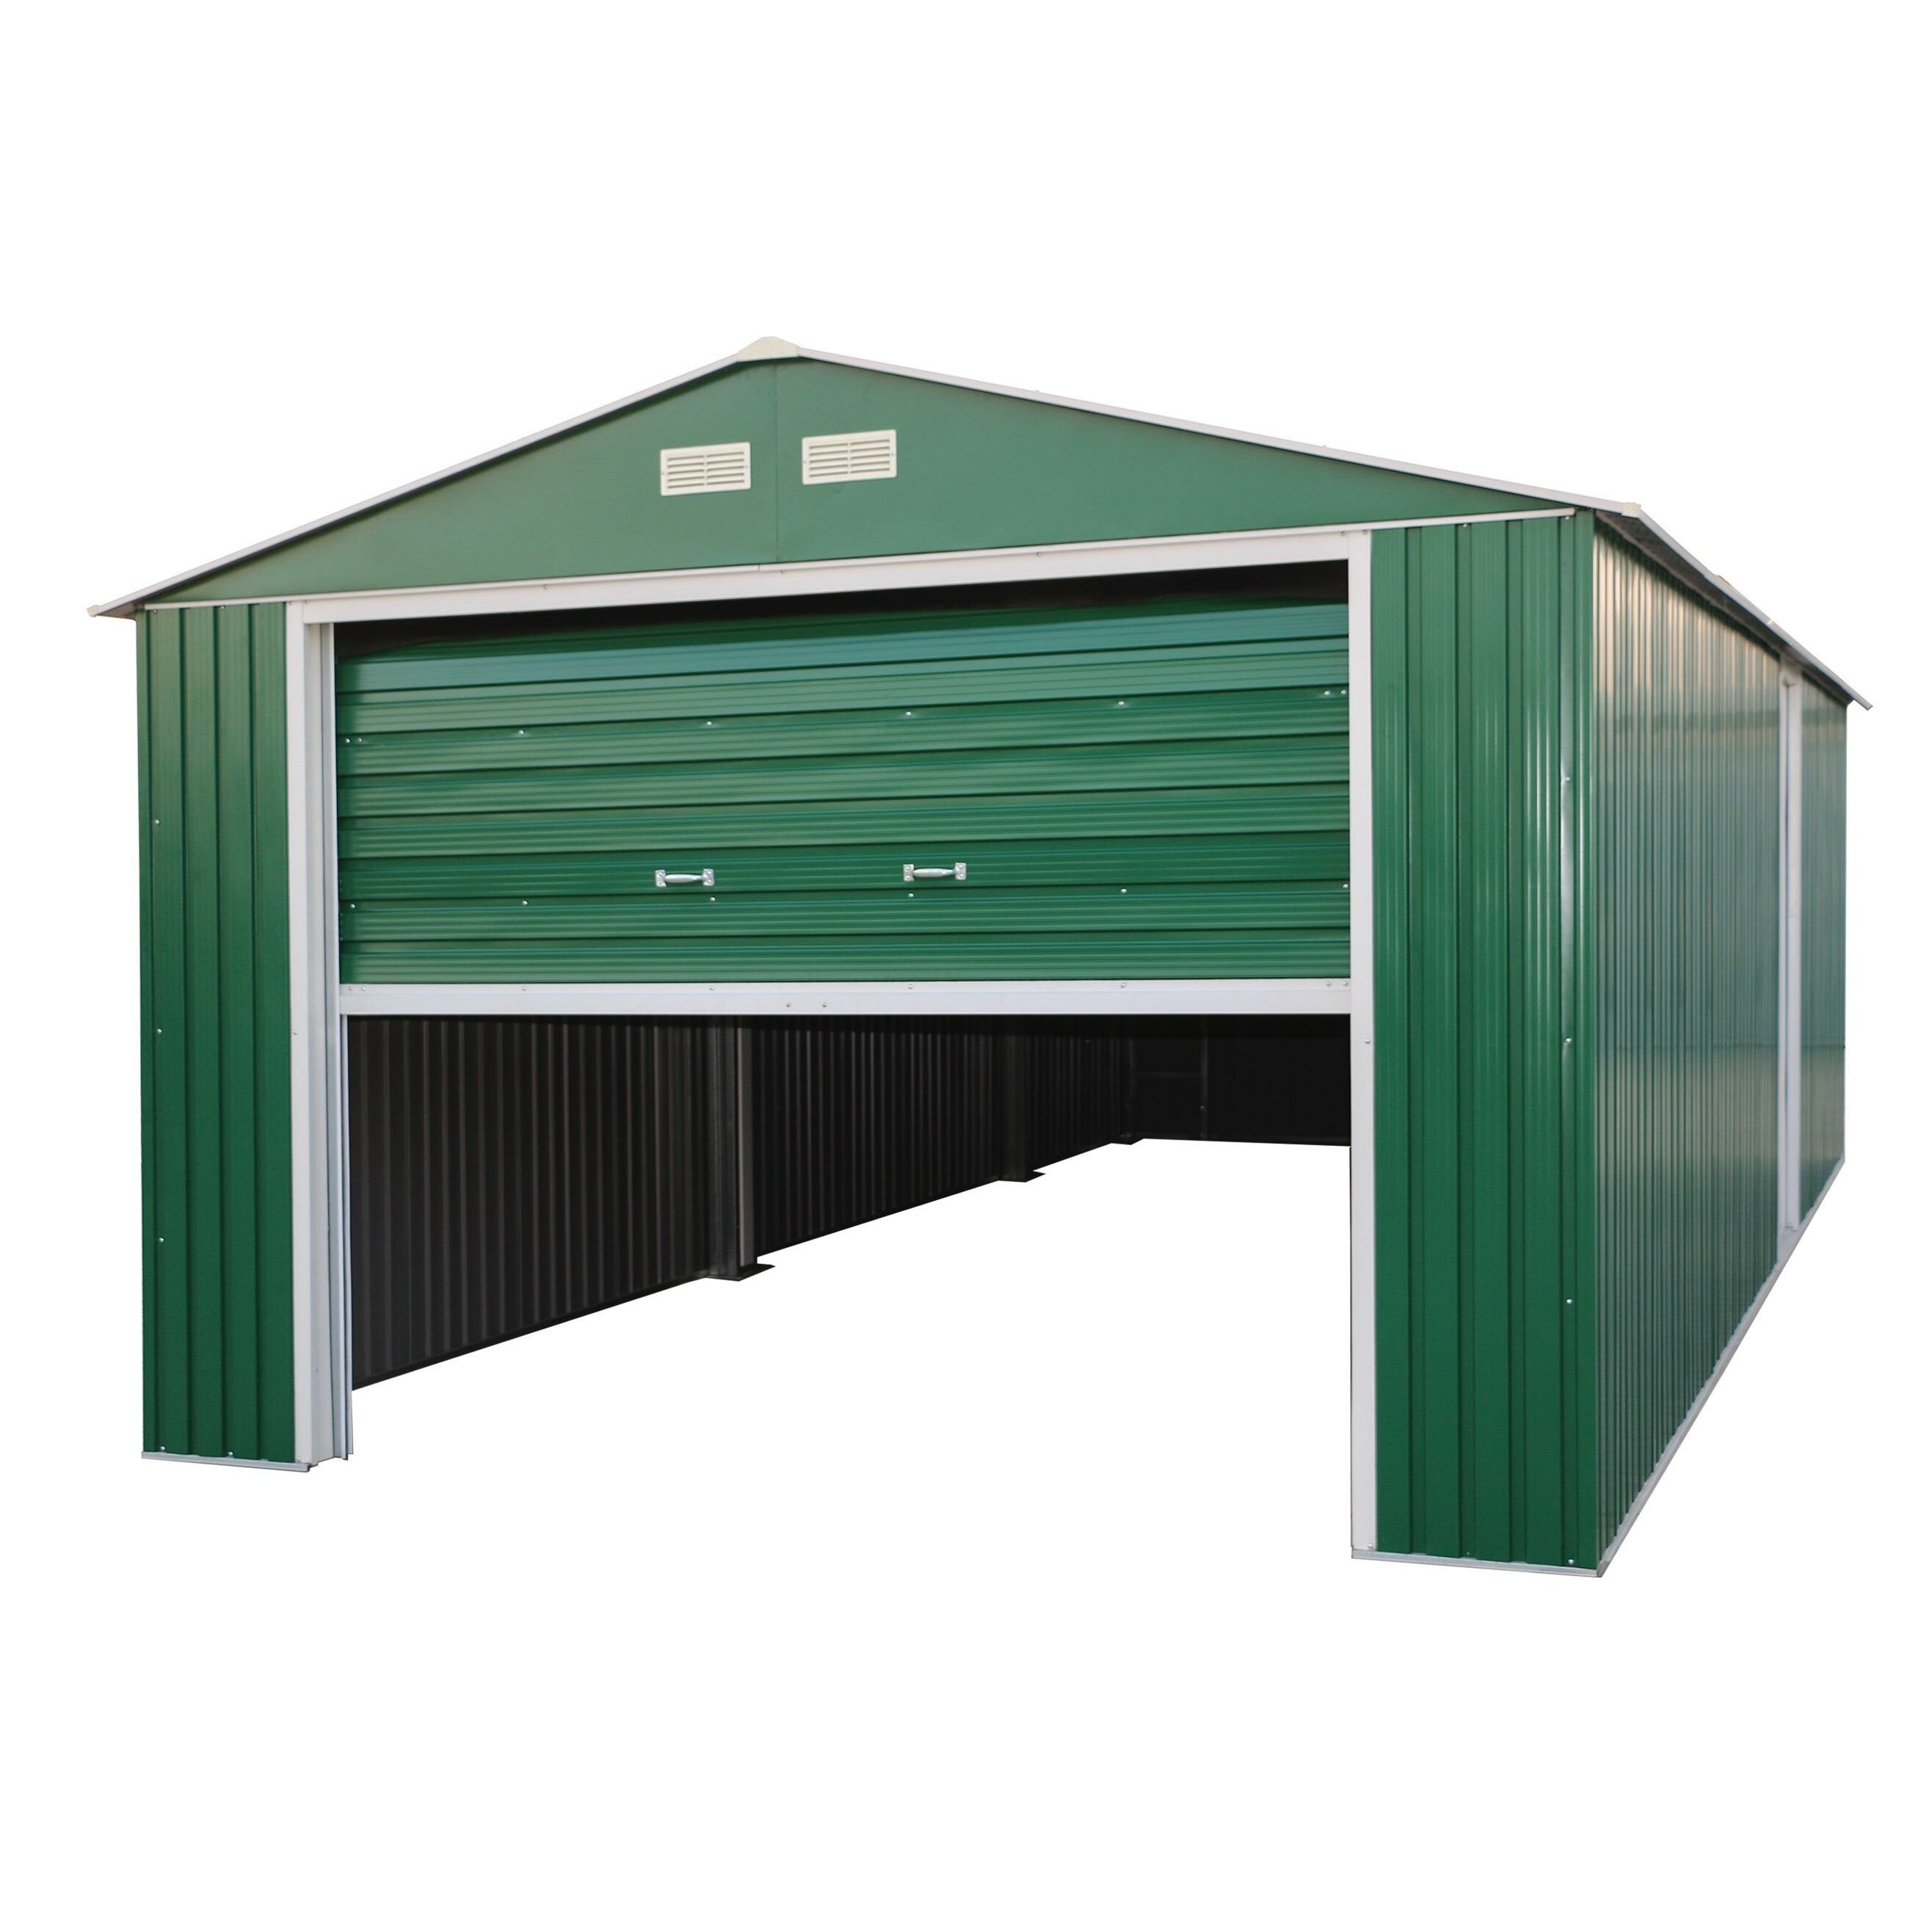 Duramax Imperial 12 Ft. W X 20 Ft. D Metal Garage Shed